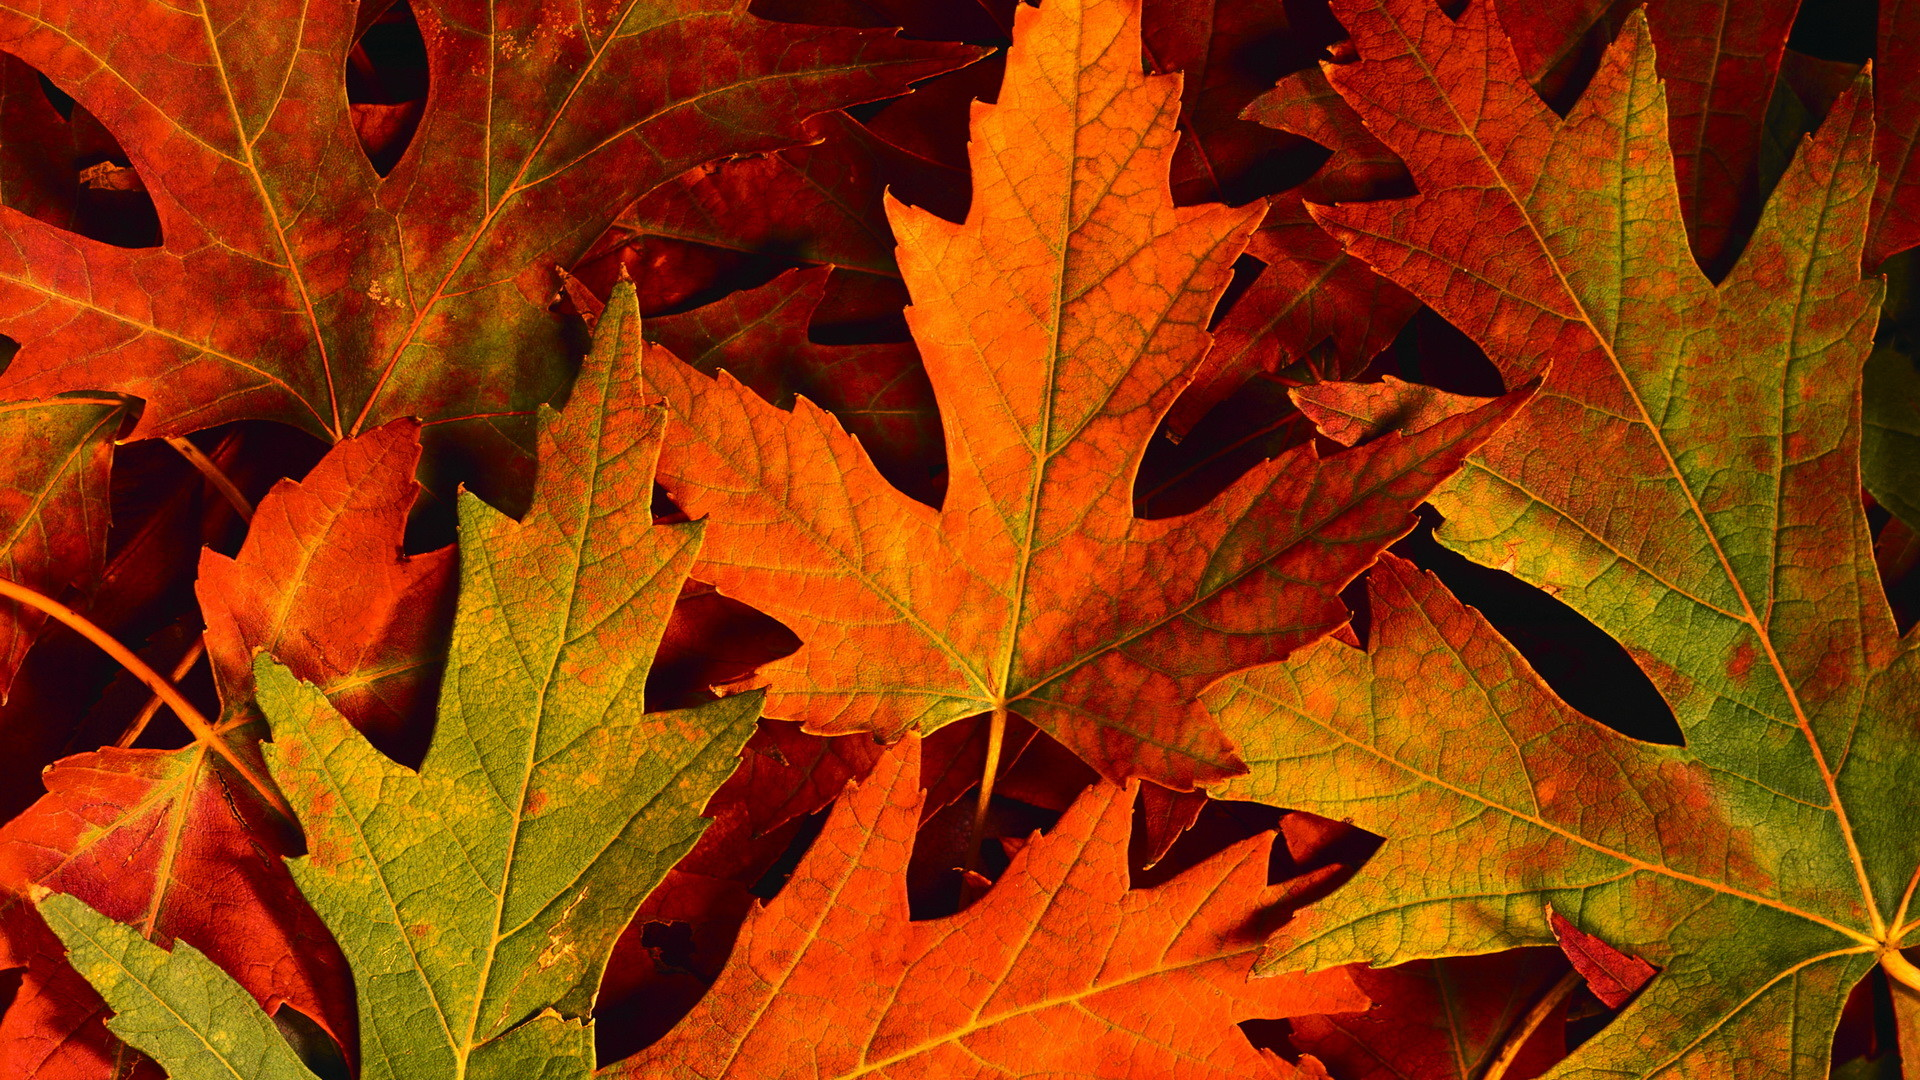 Desktop Wallpaper Autumn Leaves (65+ Images